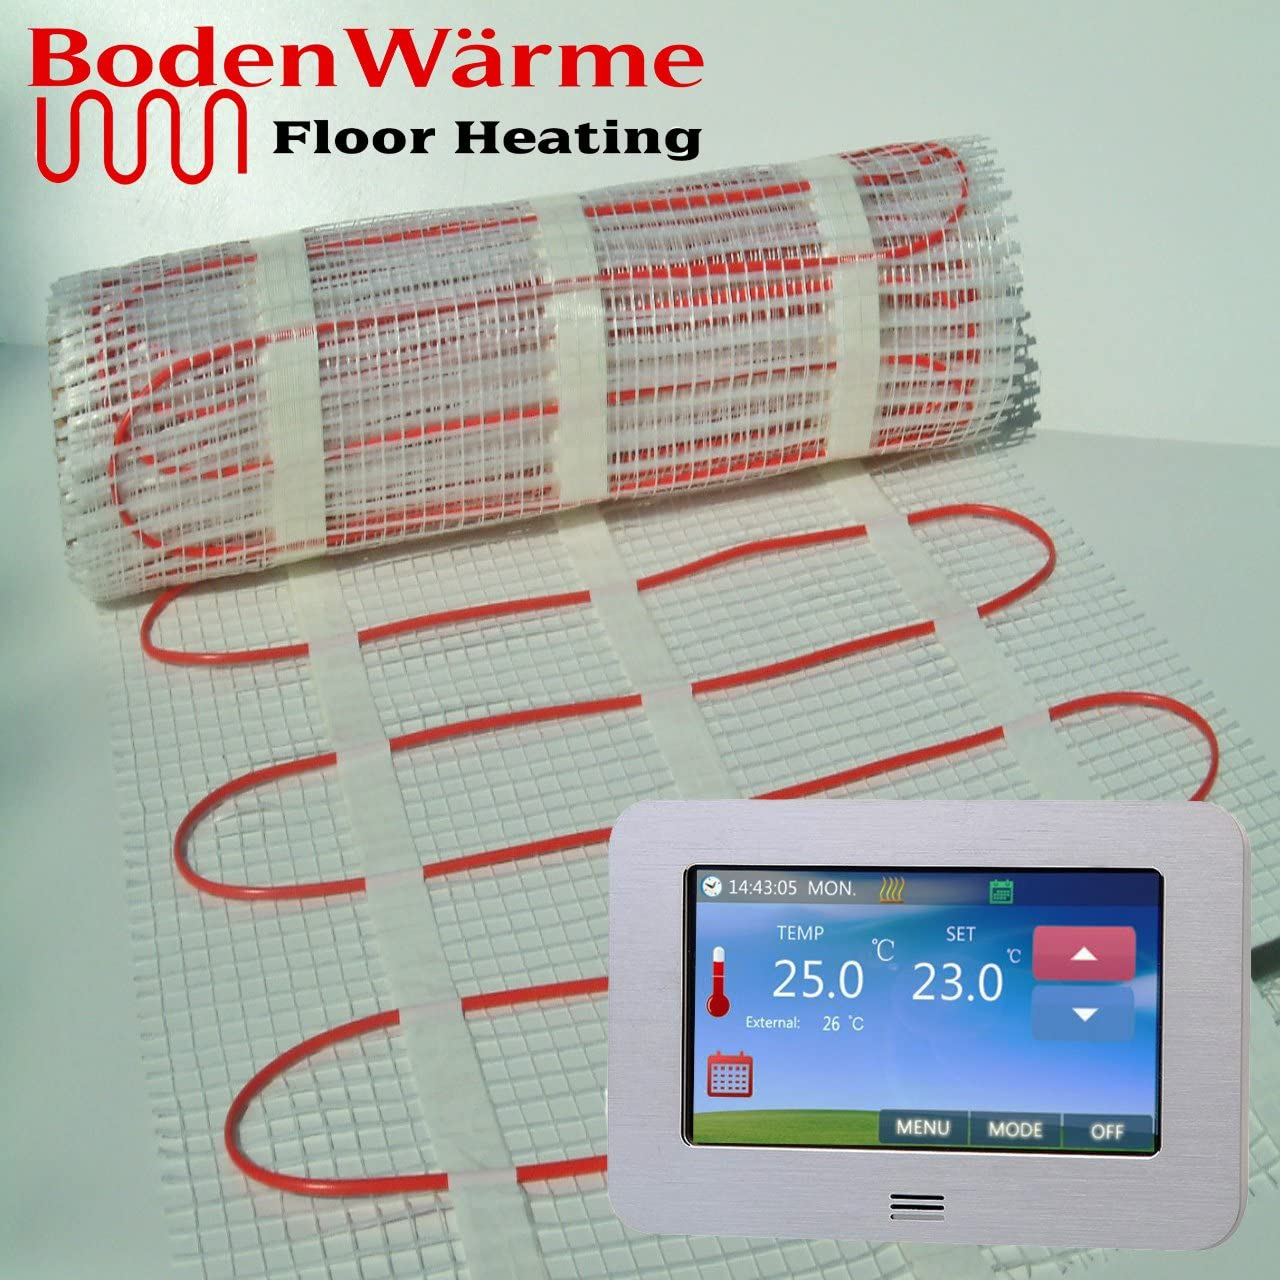 4.0m/², Digital Thermostat Thermostat *All Sizes* BodenW/ärme Premium Quality Electric Dual Core Under Tile Heating Underfloor Heating Mat 200w //m/²